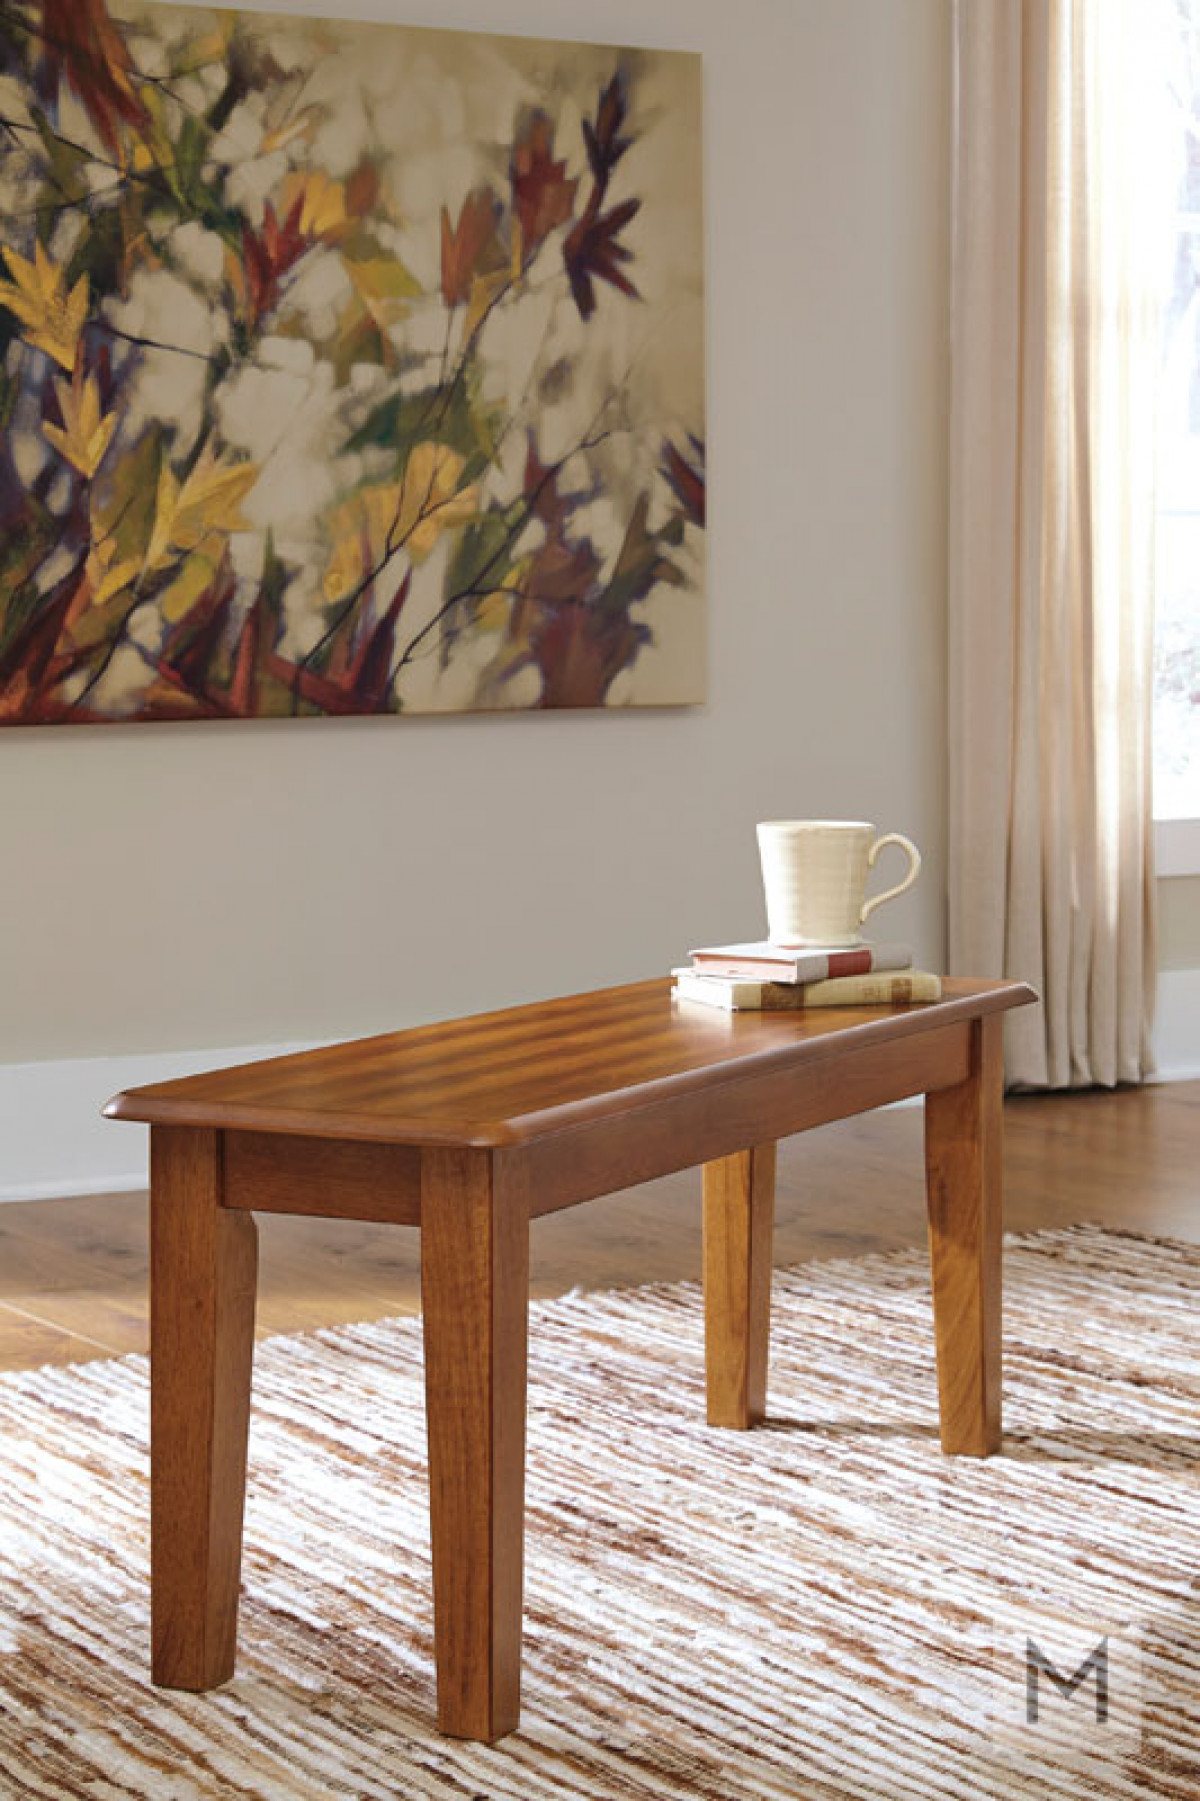 Berringer Dining Room Bench in Rustic Brown